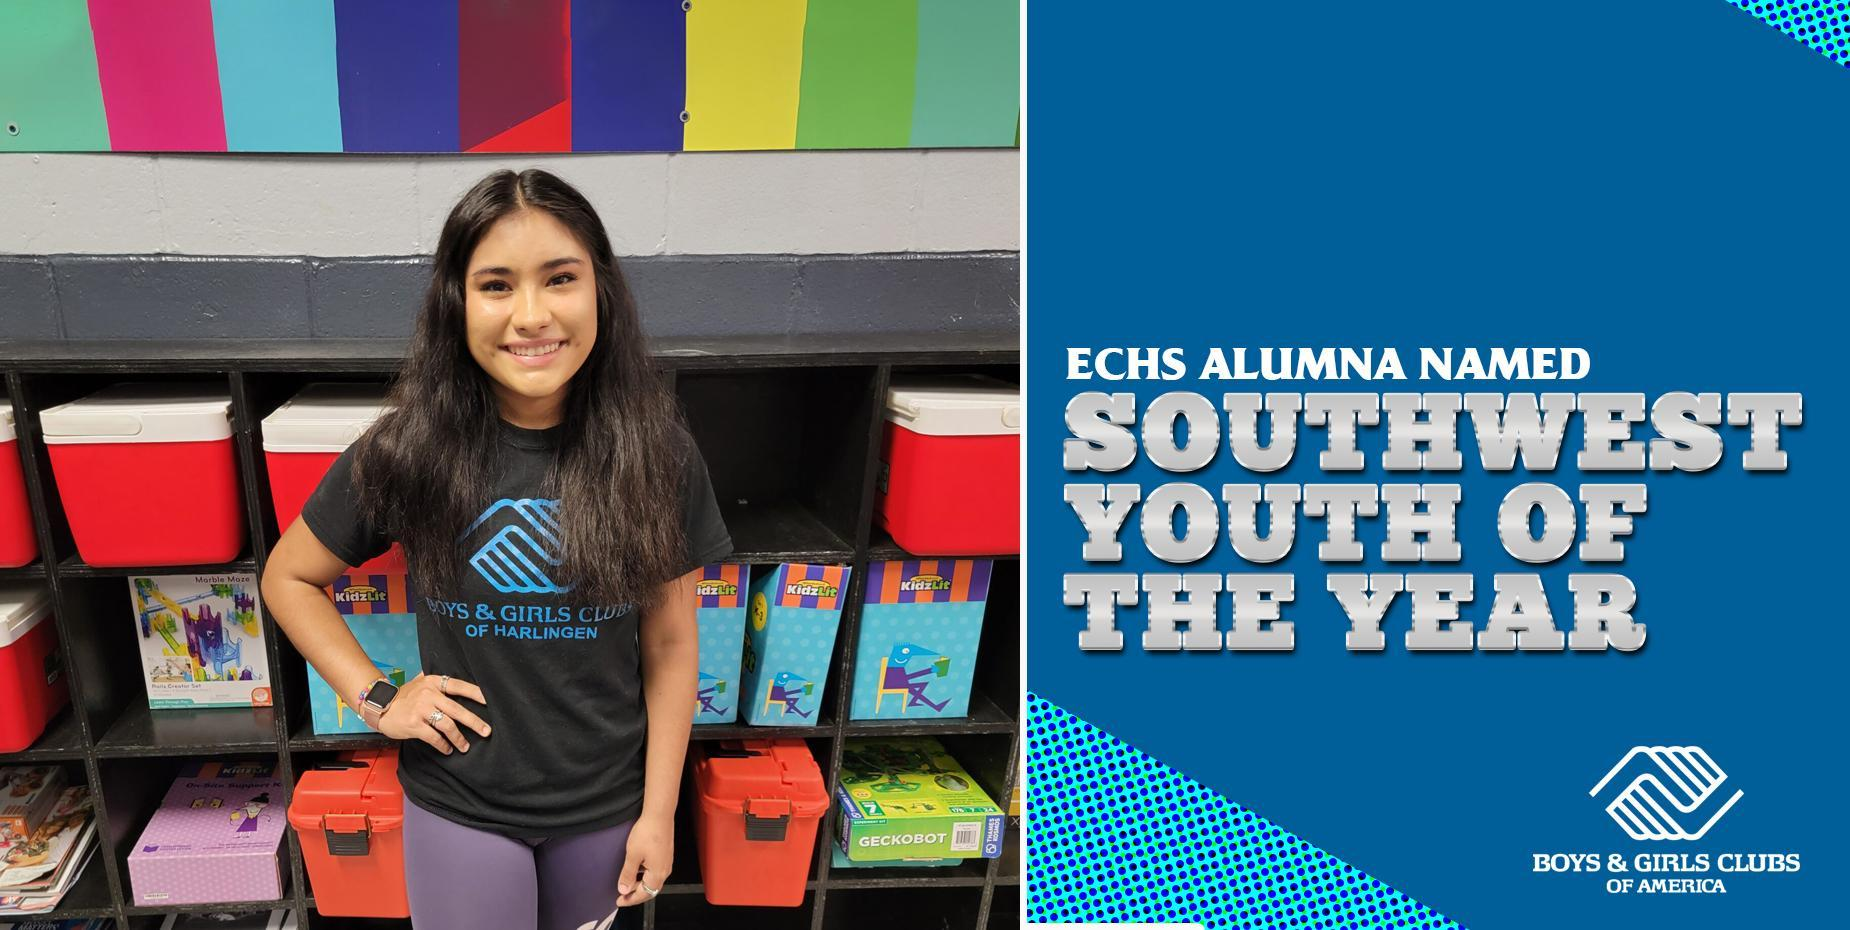 ECHS alumna named Southwest Youth of the Year